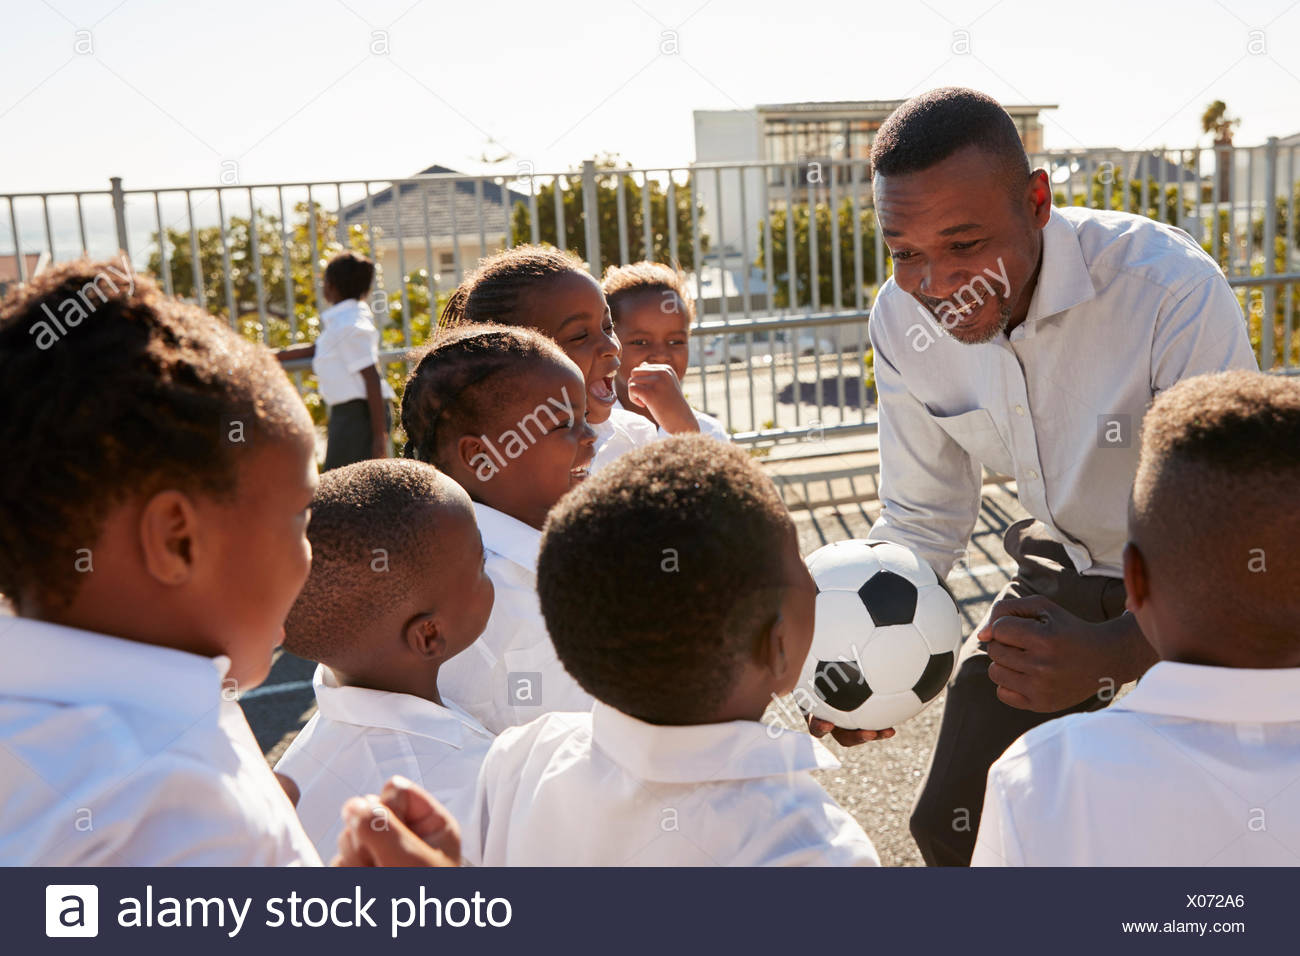 Young kids in a school playground with teacher holding ball - Stock Image